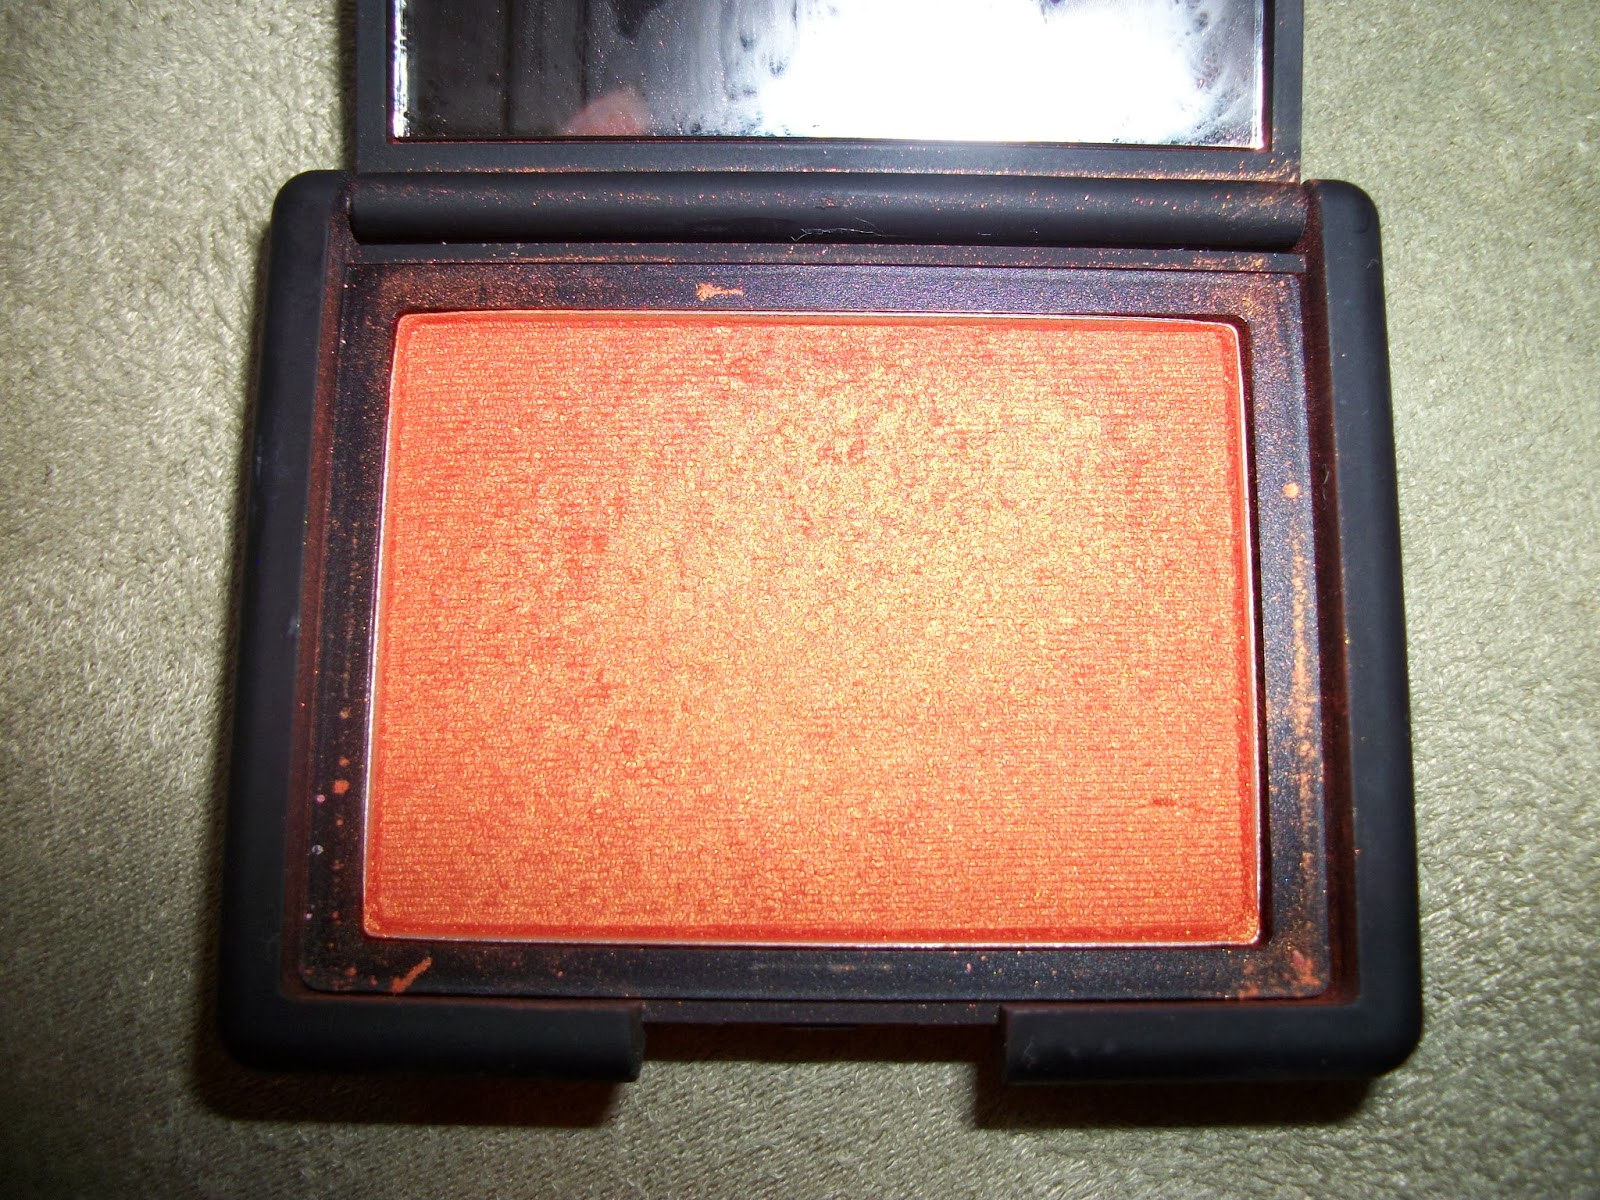 Nars Taj Mahal Nc42 Mieux Make-Up: Throwba...